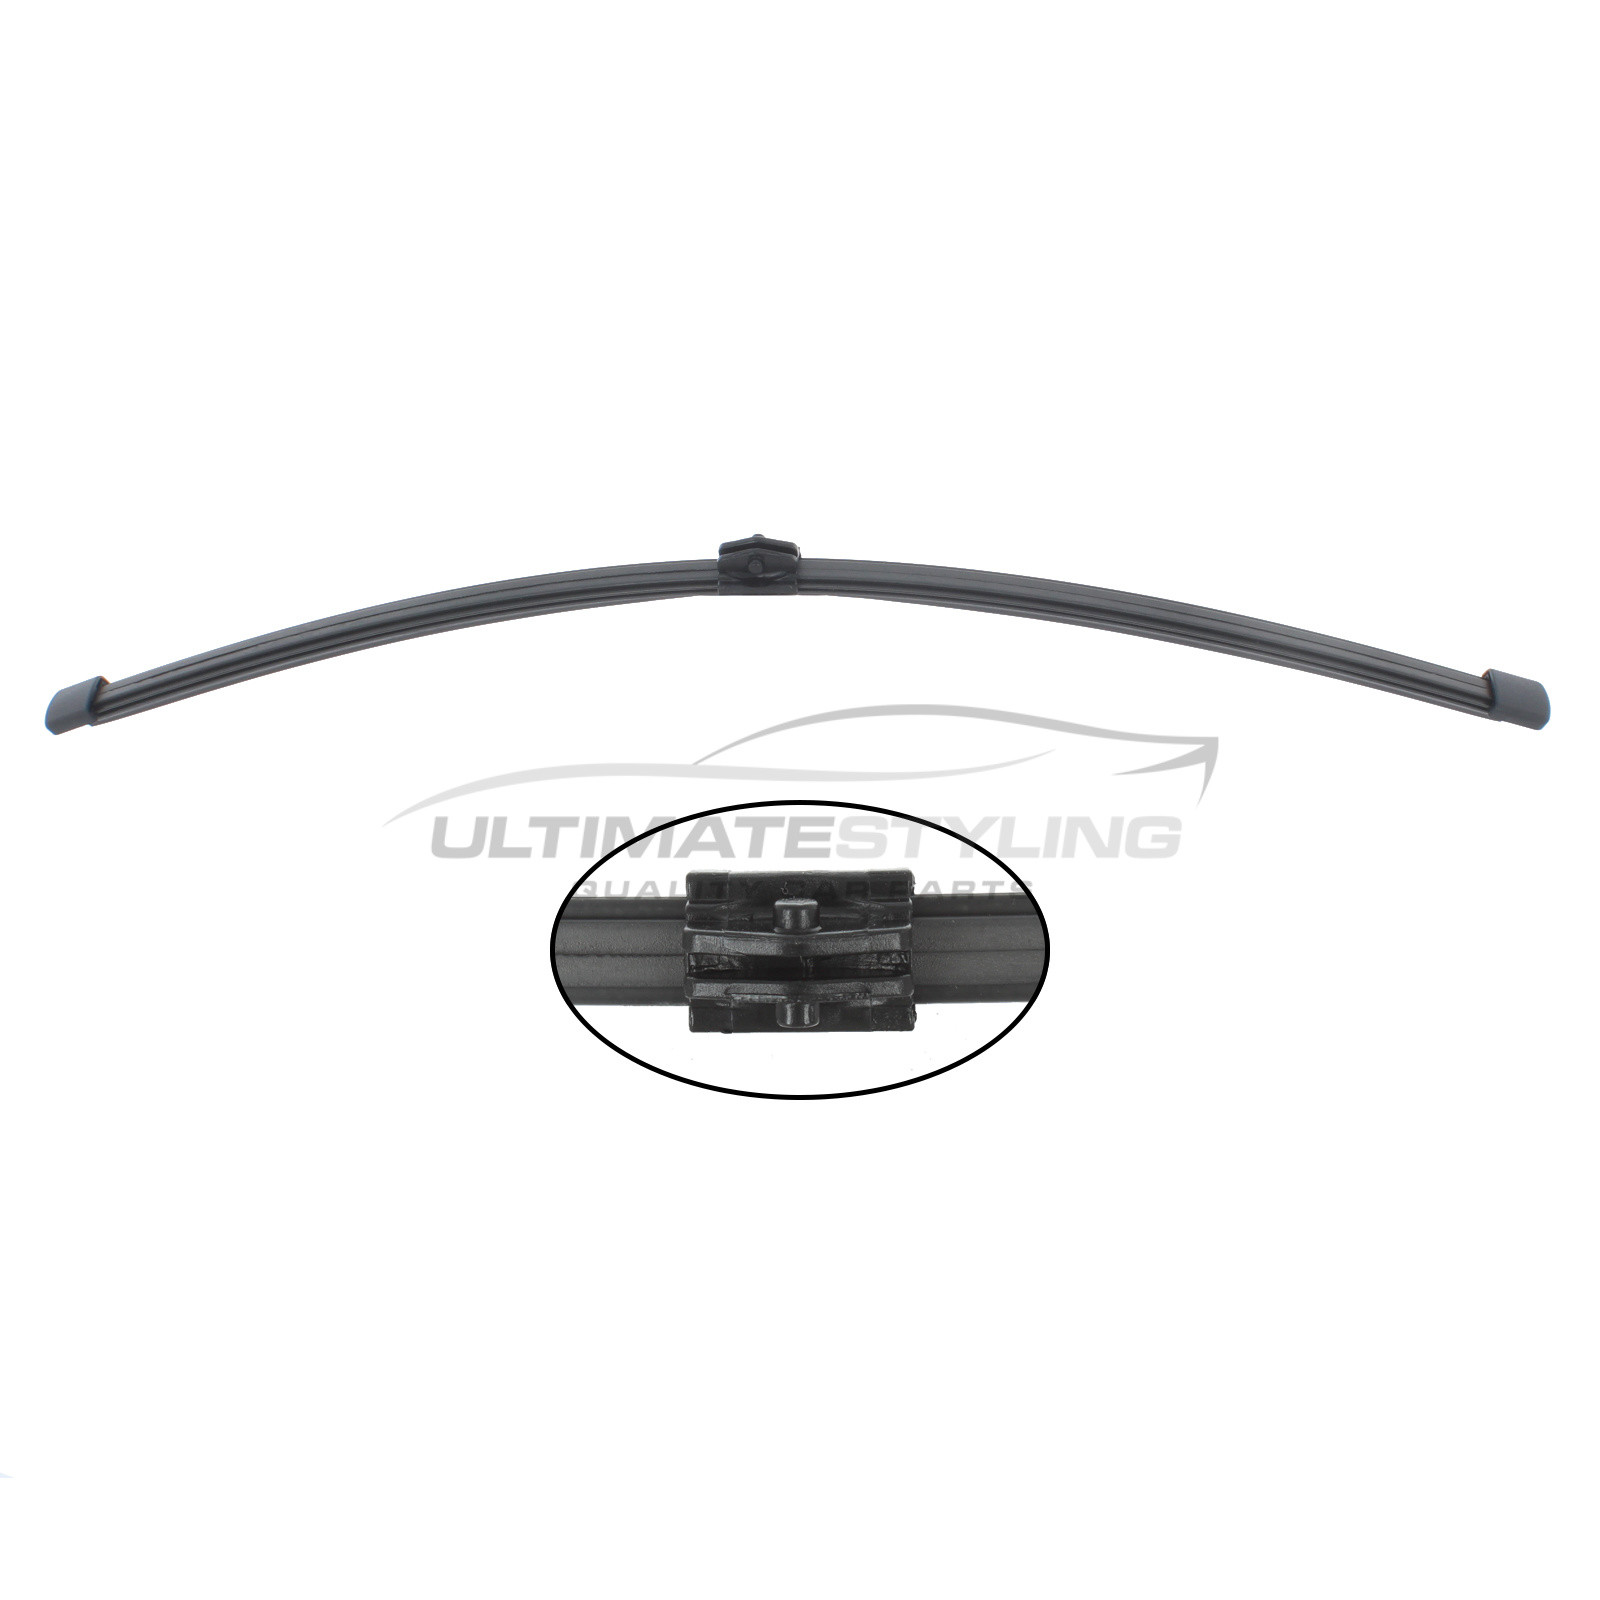 Rear Wiper Blade for Audi A6